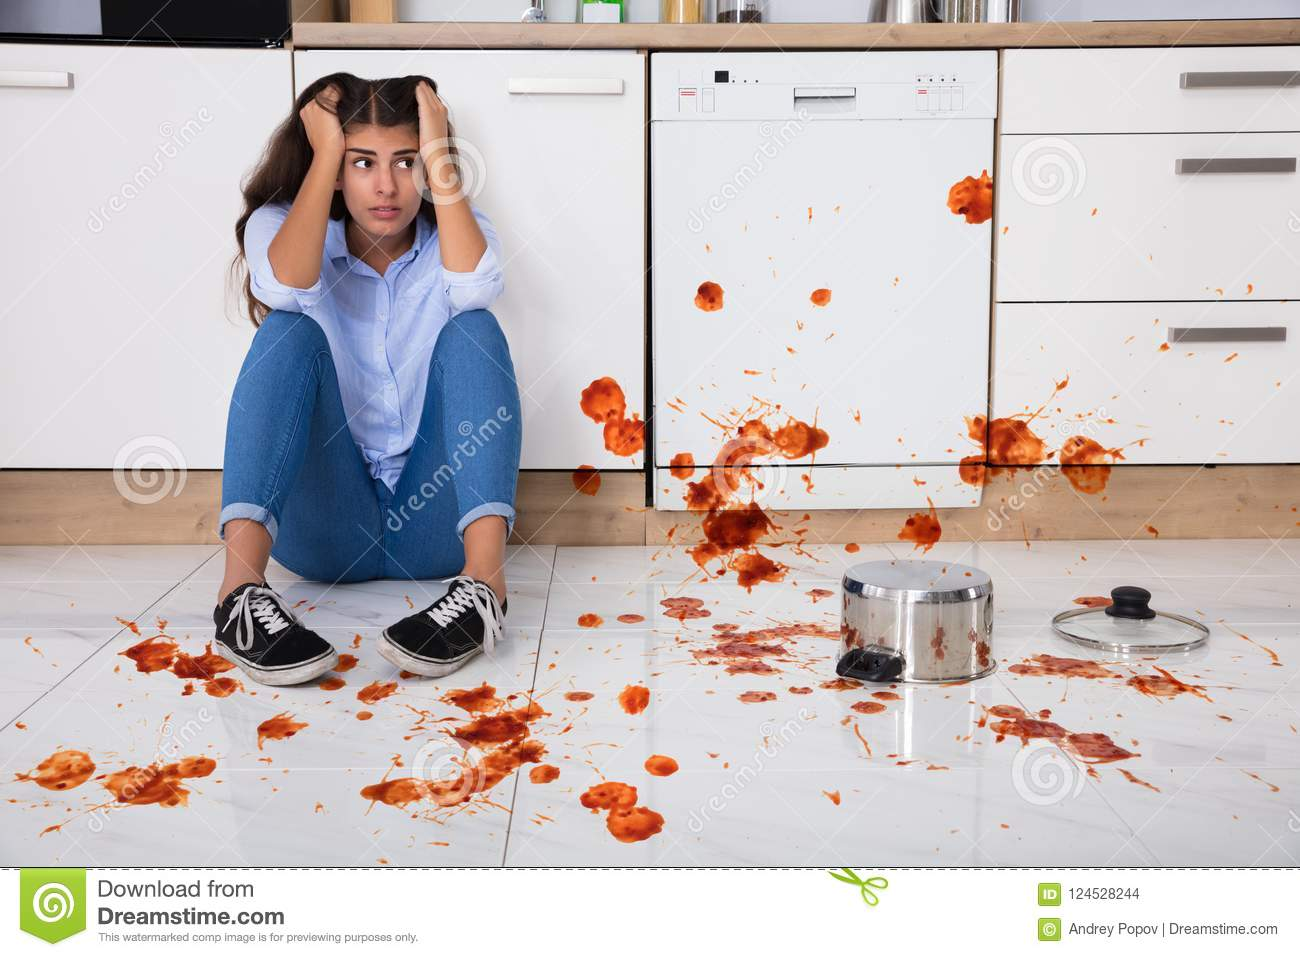 Woman Sitting On Kitchen Floor With Spilled Food